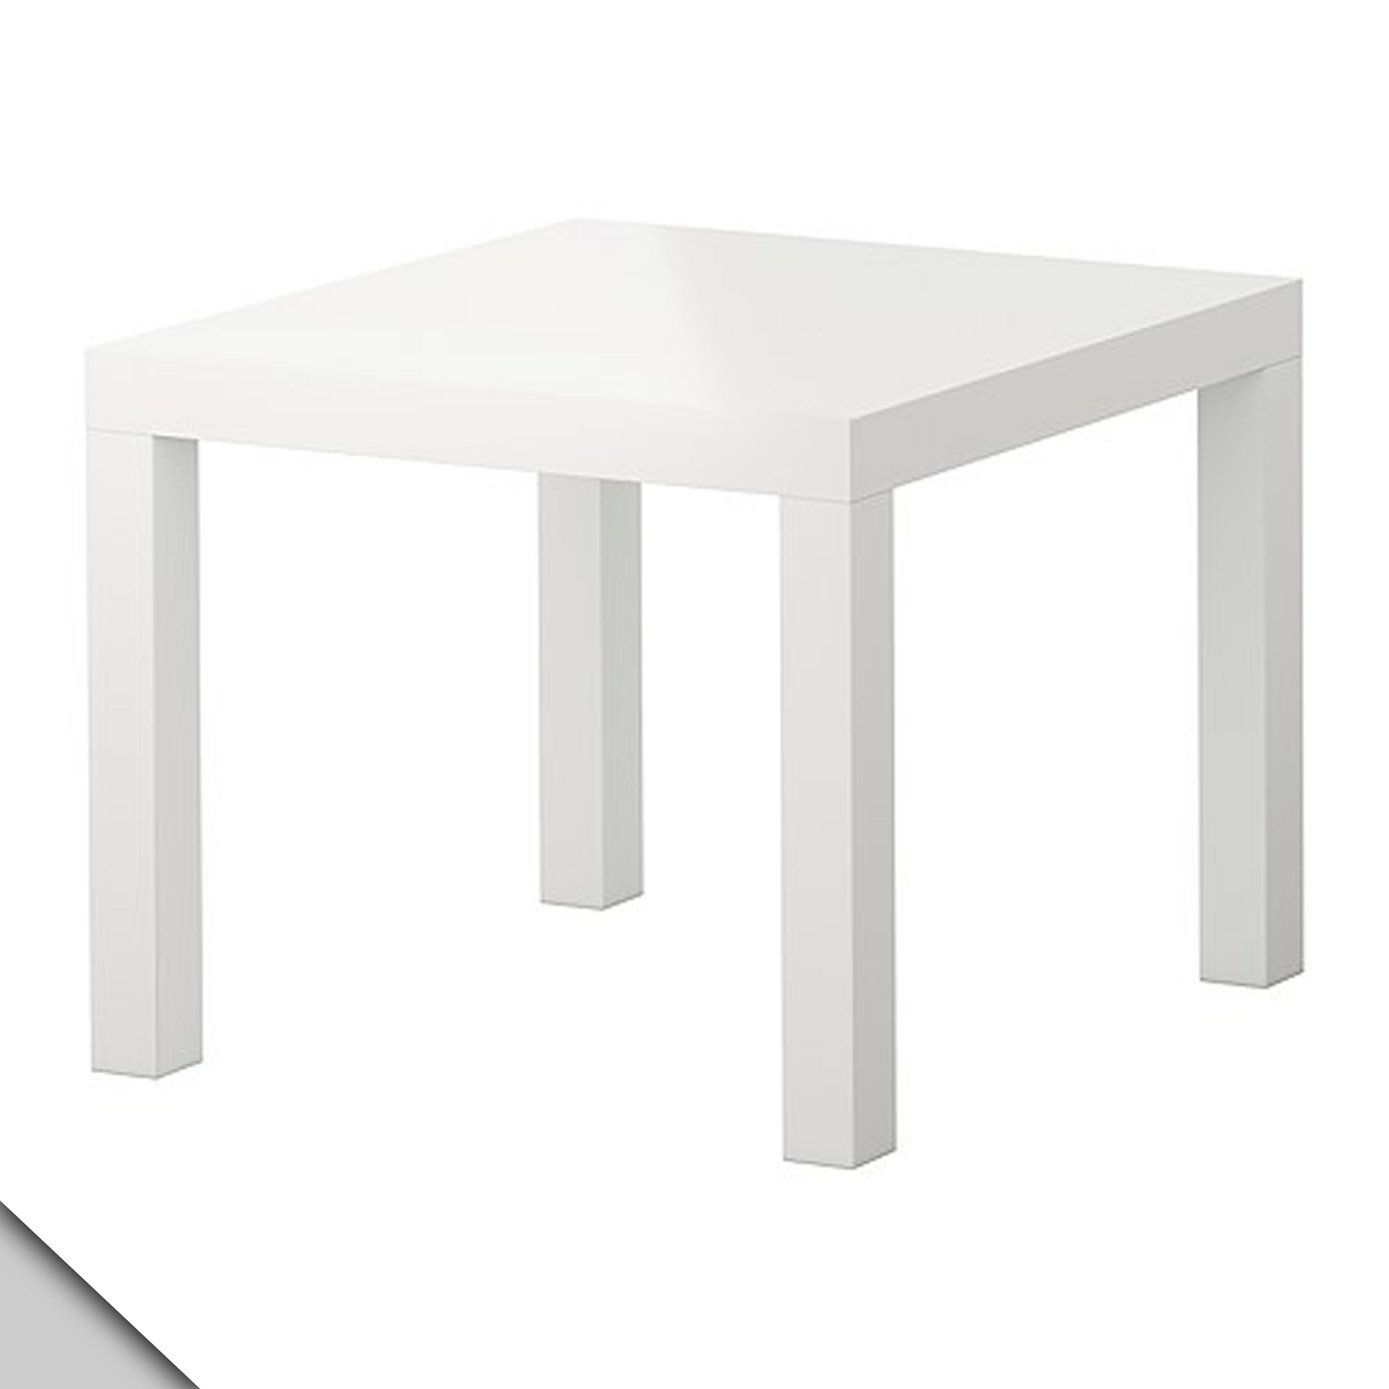 amazon com ikea lack side table high gloss white x2 kitchen